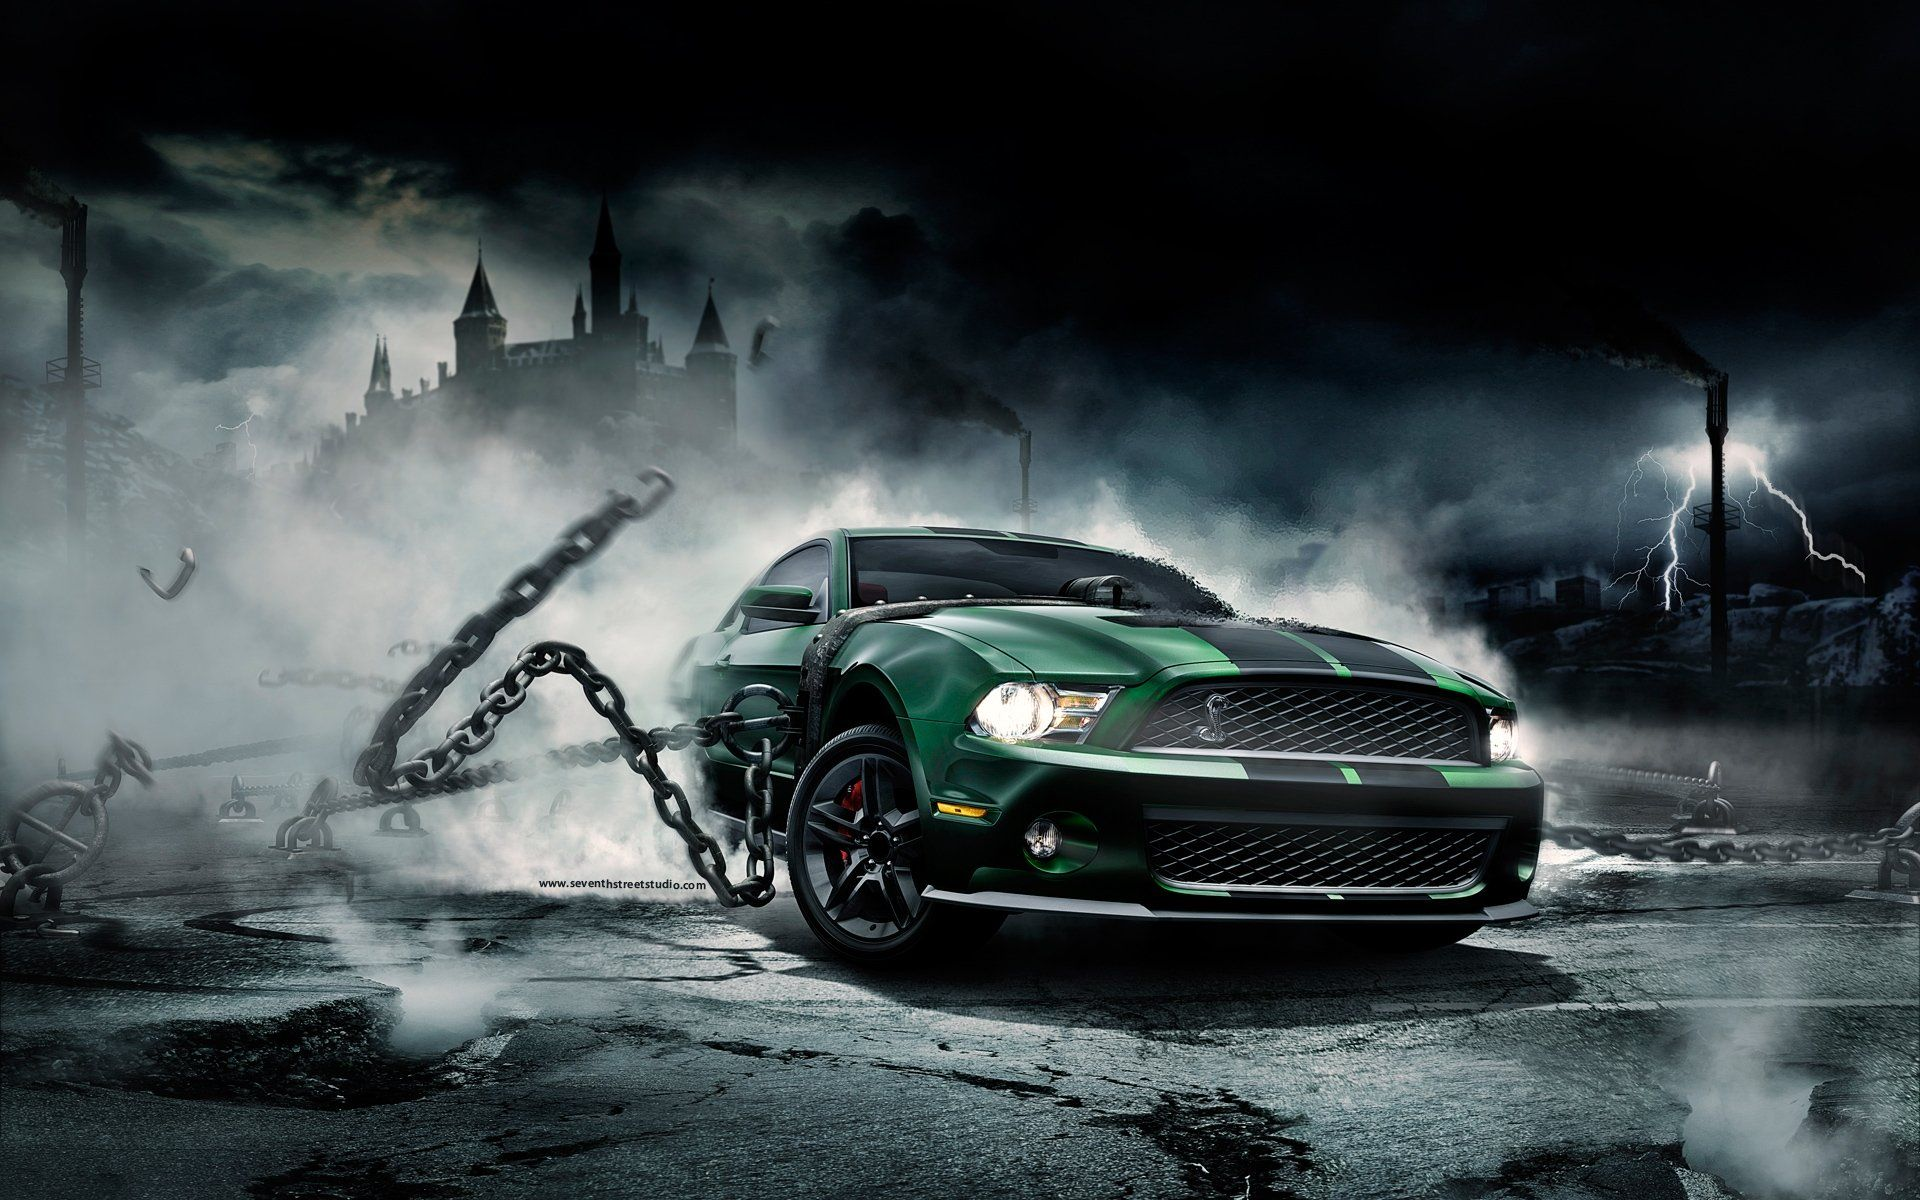 High Definition Wallpapers 1080p For Desktop Free Download Ford Mustang Wallpaper Mustang Wallpaper Car Wallpapers